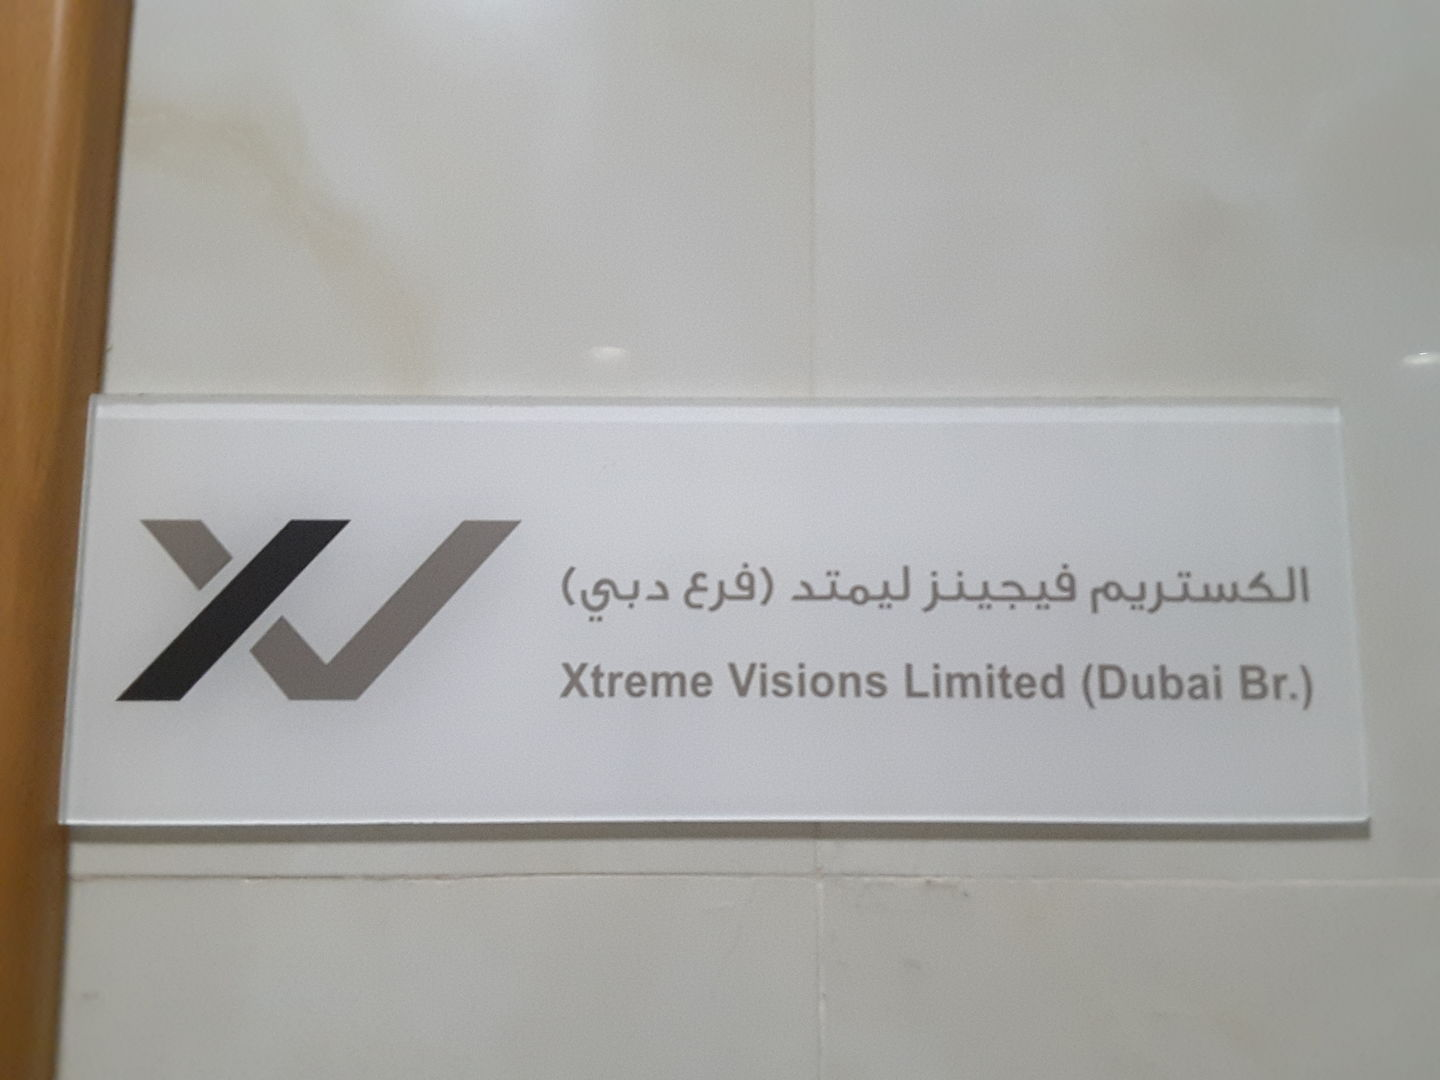 HiDubai-business-xtreme-visions-limited-b2b-services-business-consultation-services-business-bay-dubai-2